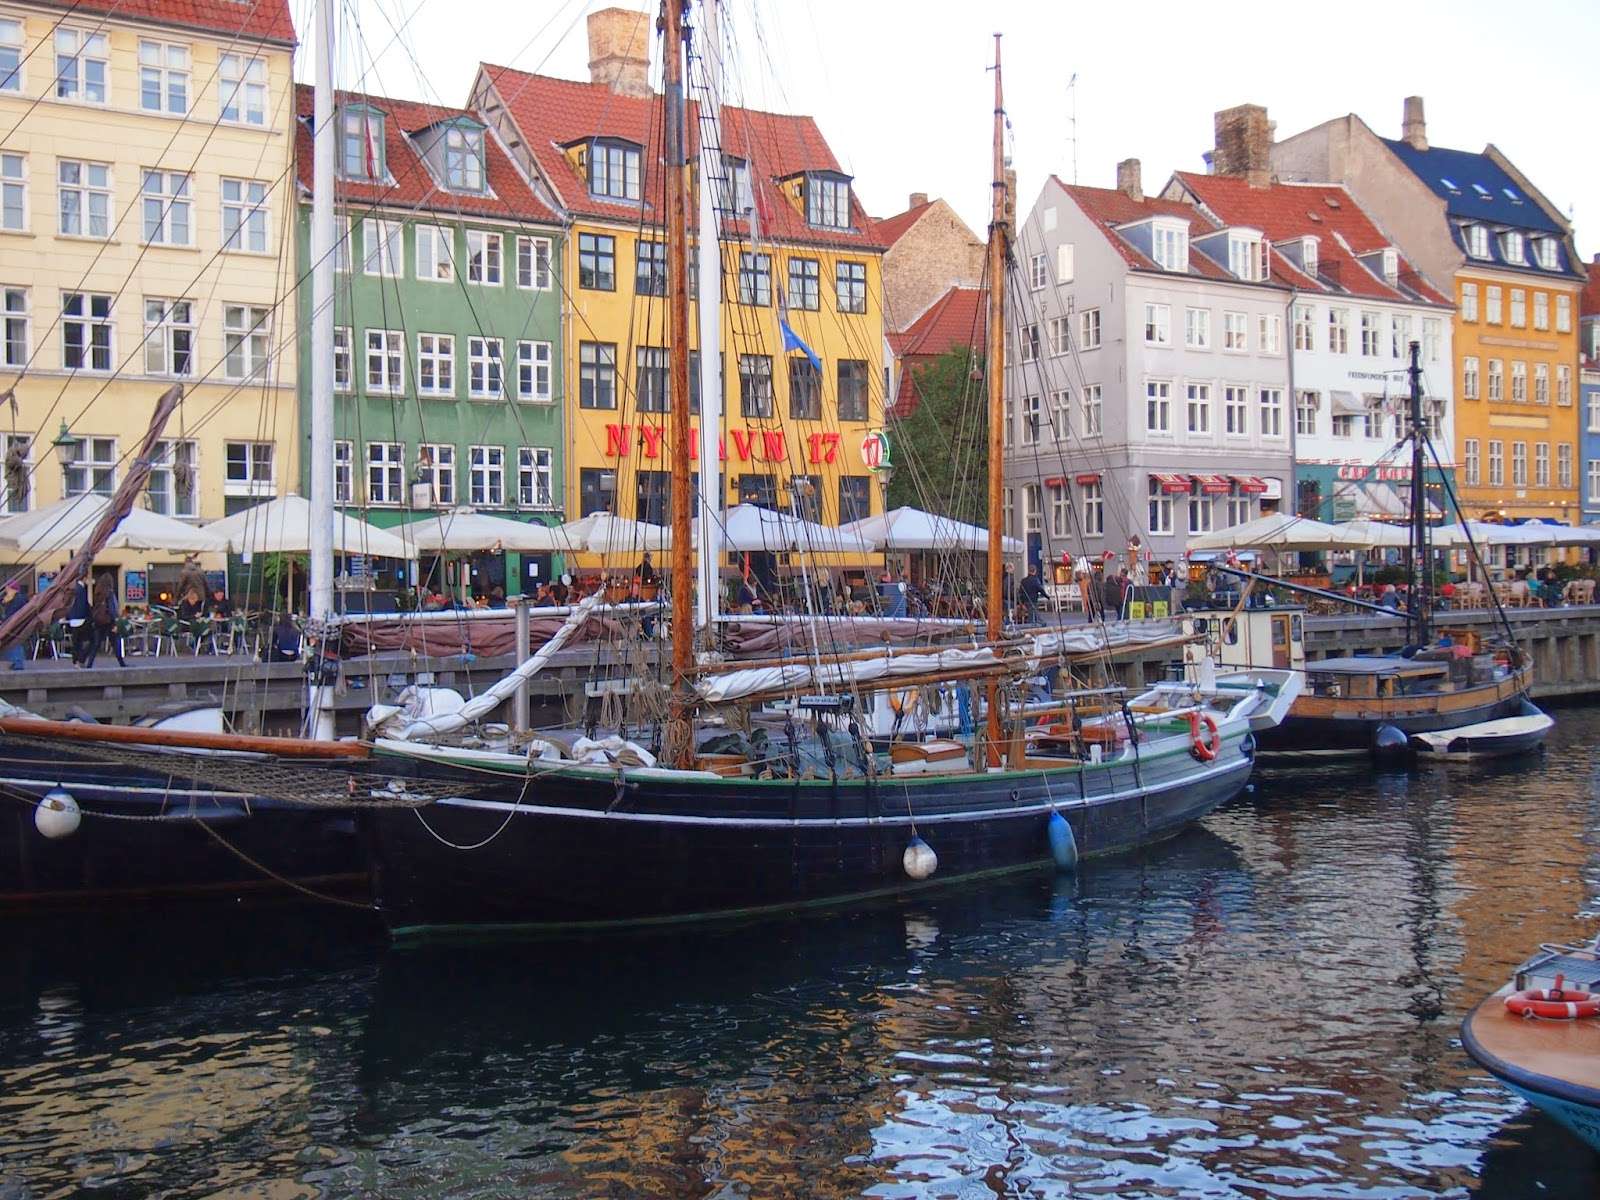 boats in the canals in Nyhavn, Copenhagen